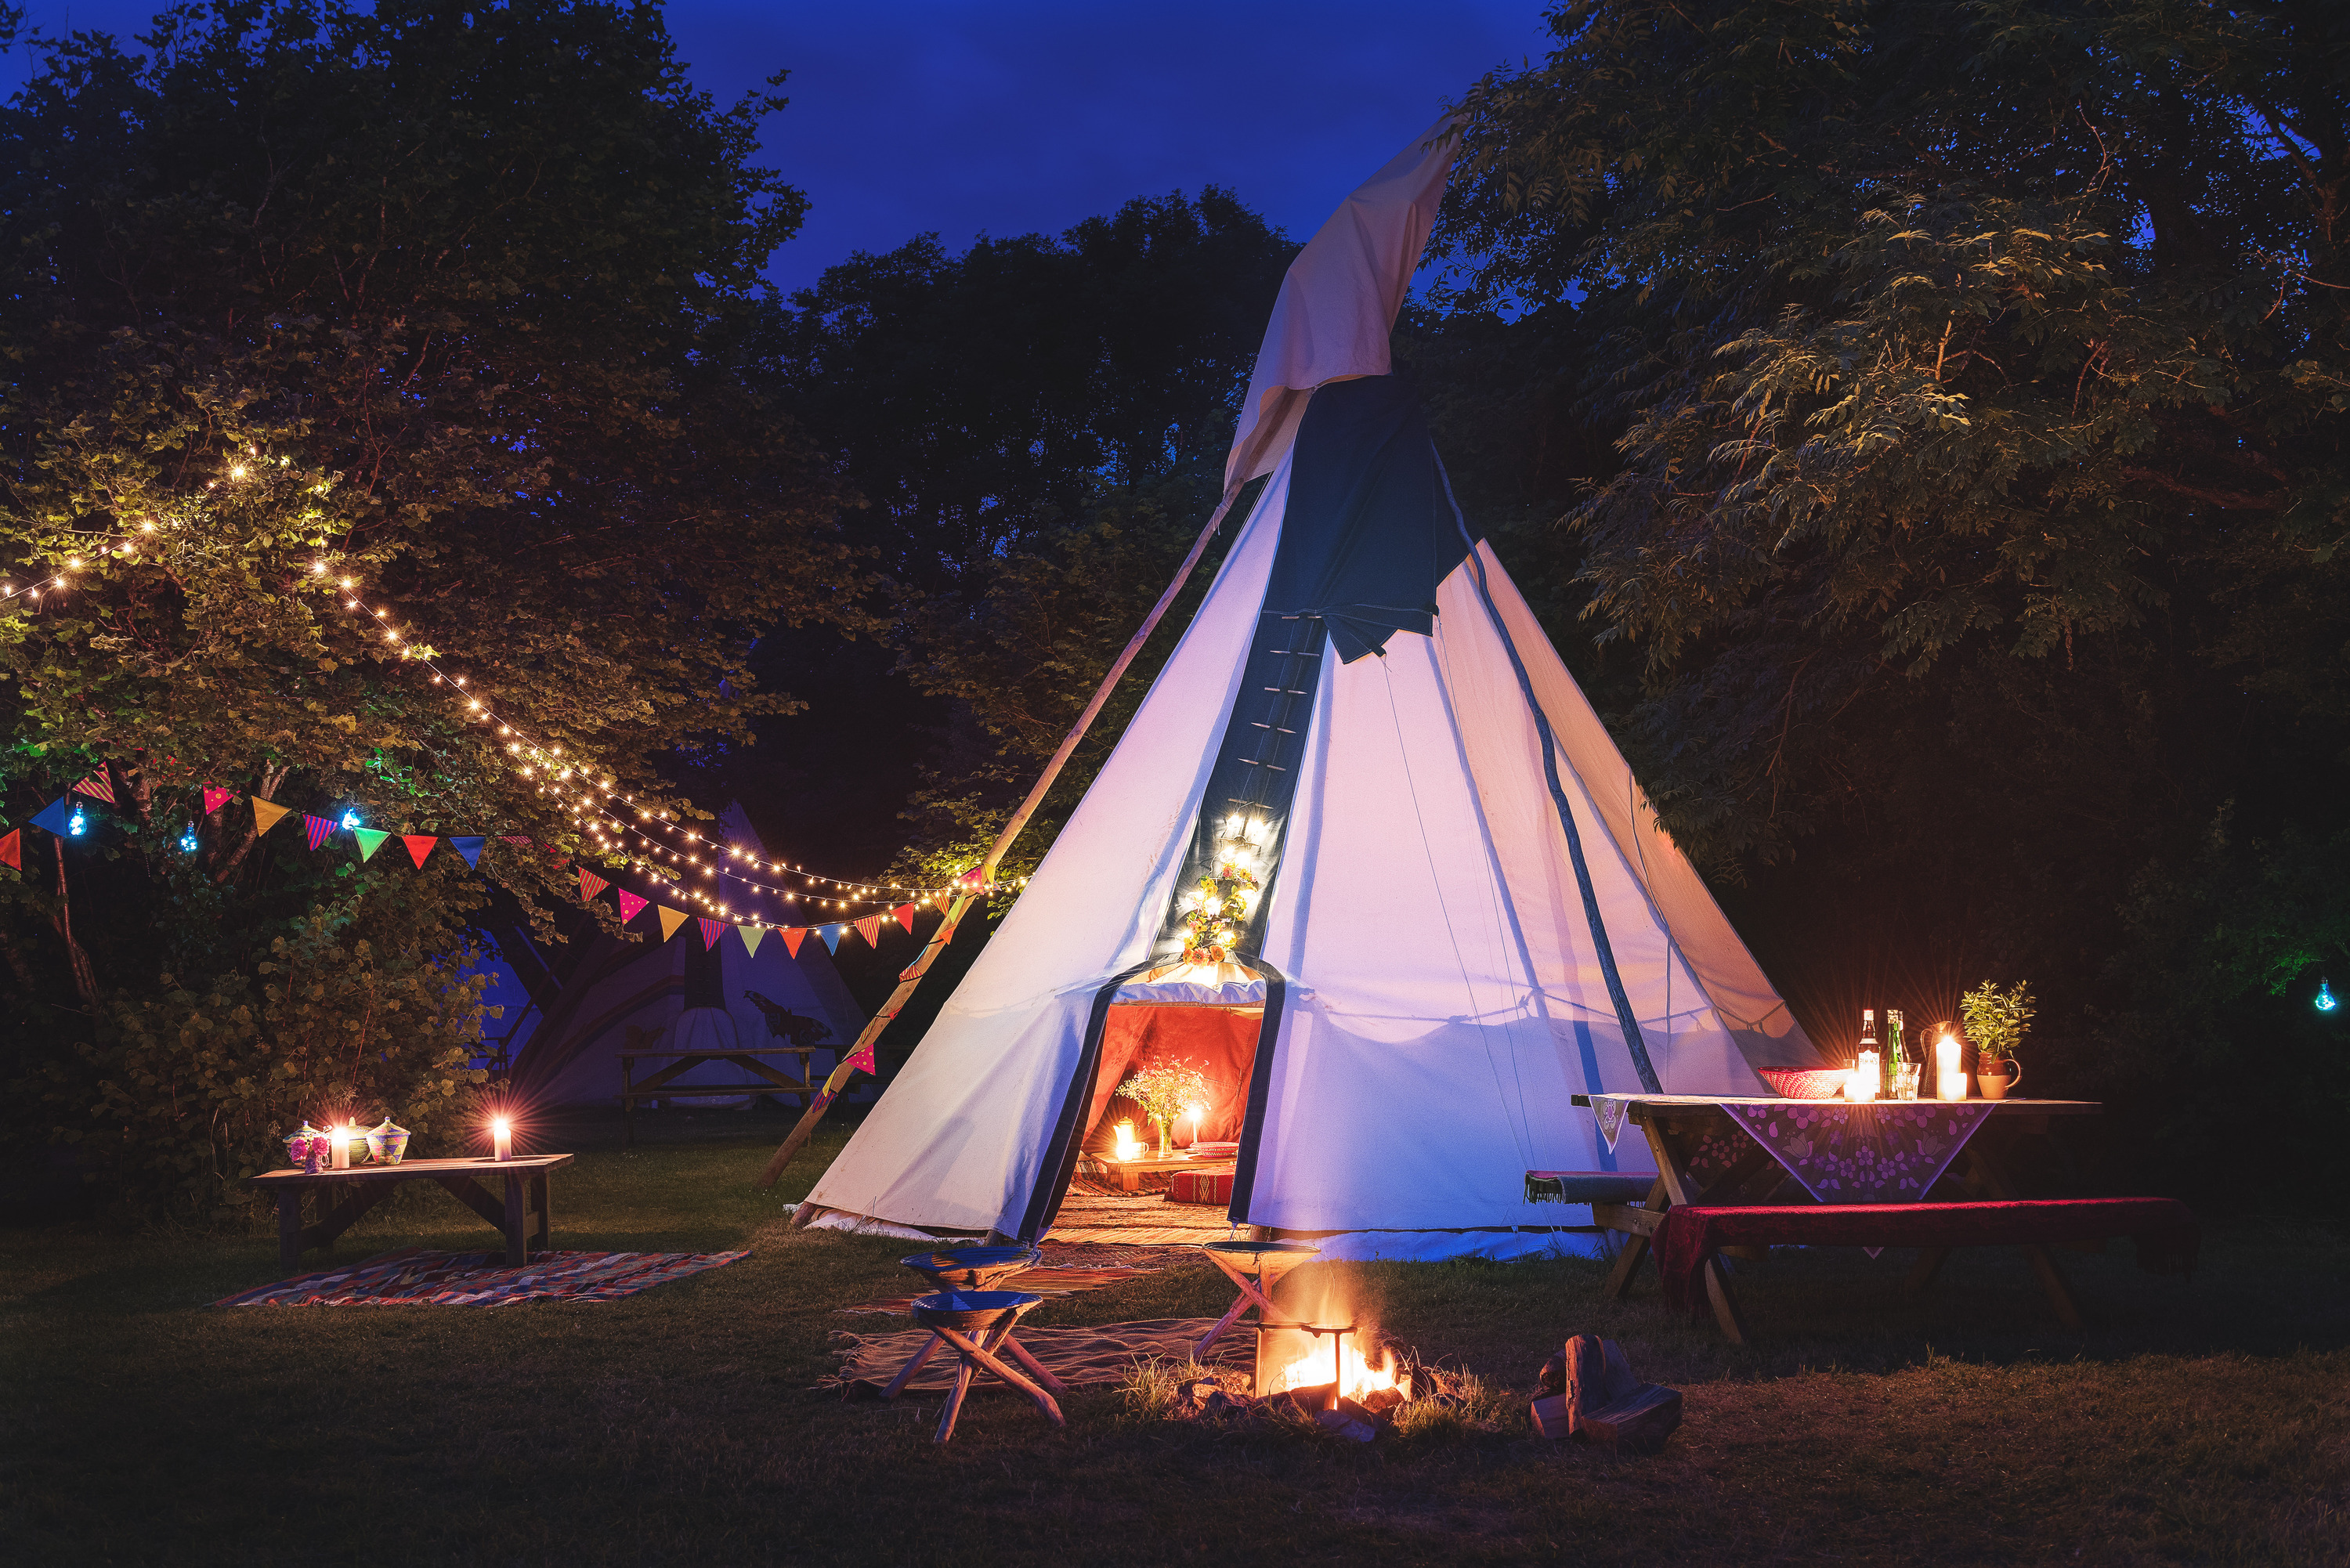 Camping at Cornish Tipi Holidays, UK